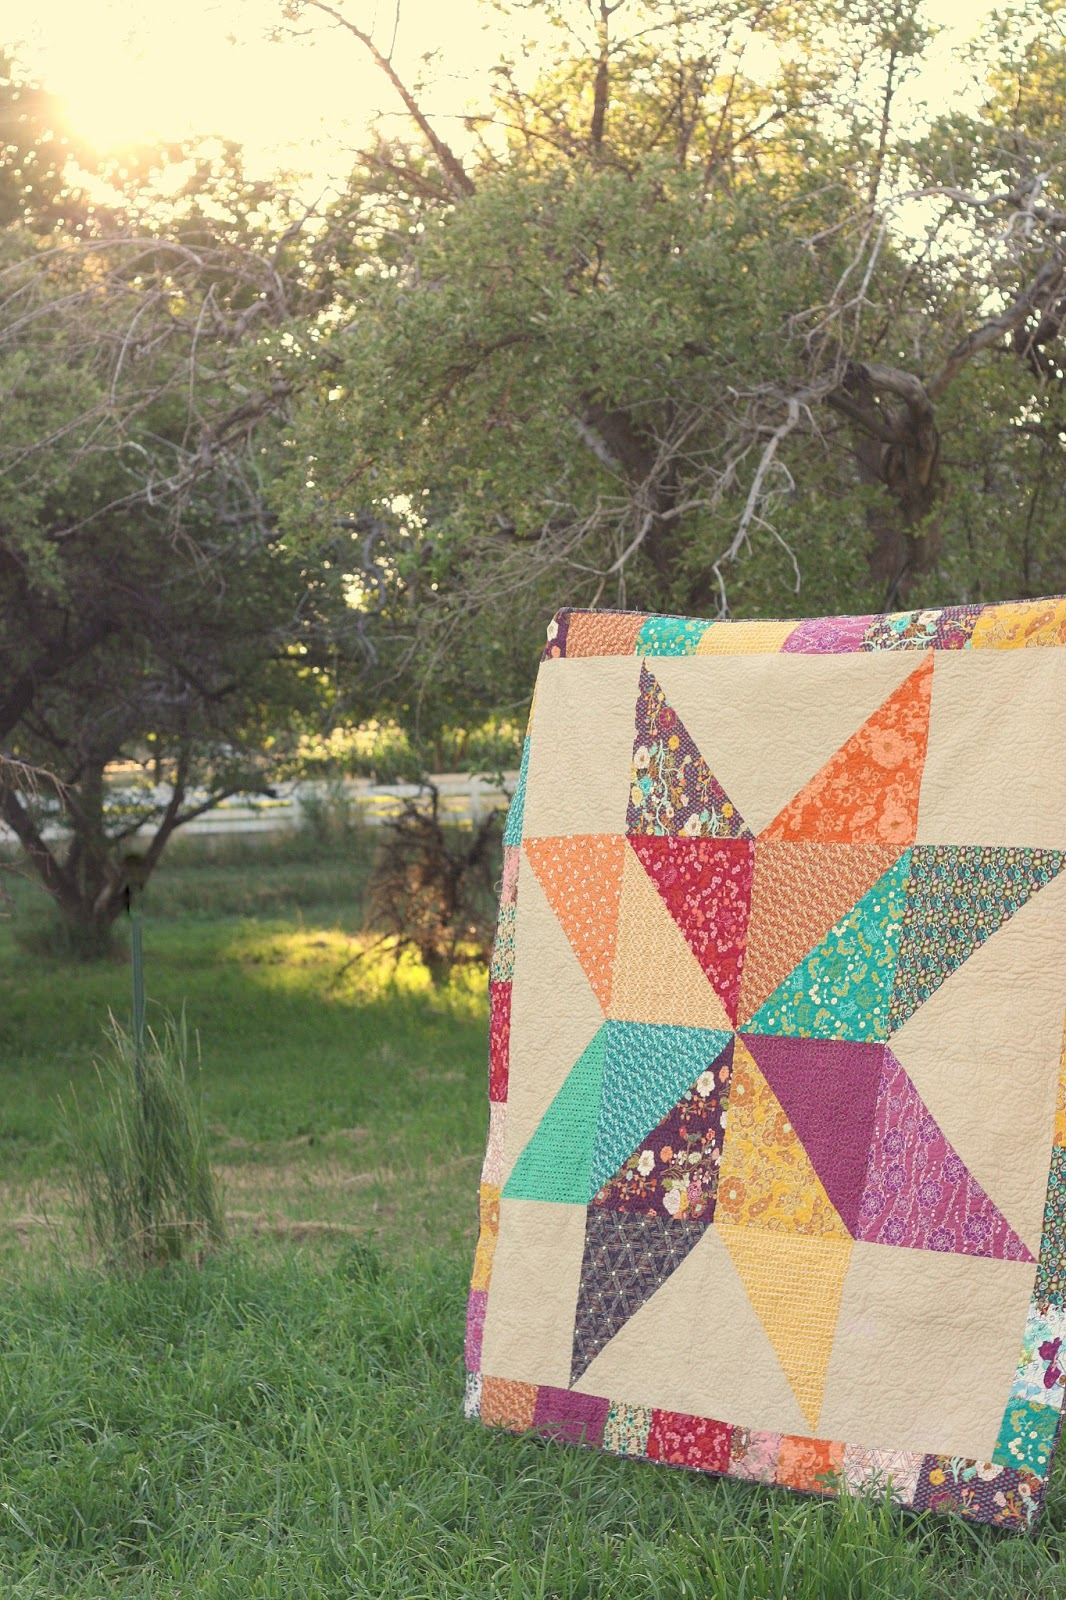 Fat Quarter Giant Star Quilt : giant star quilt - Adamdwight.com